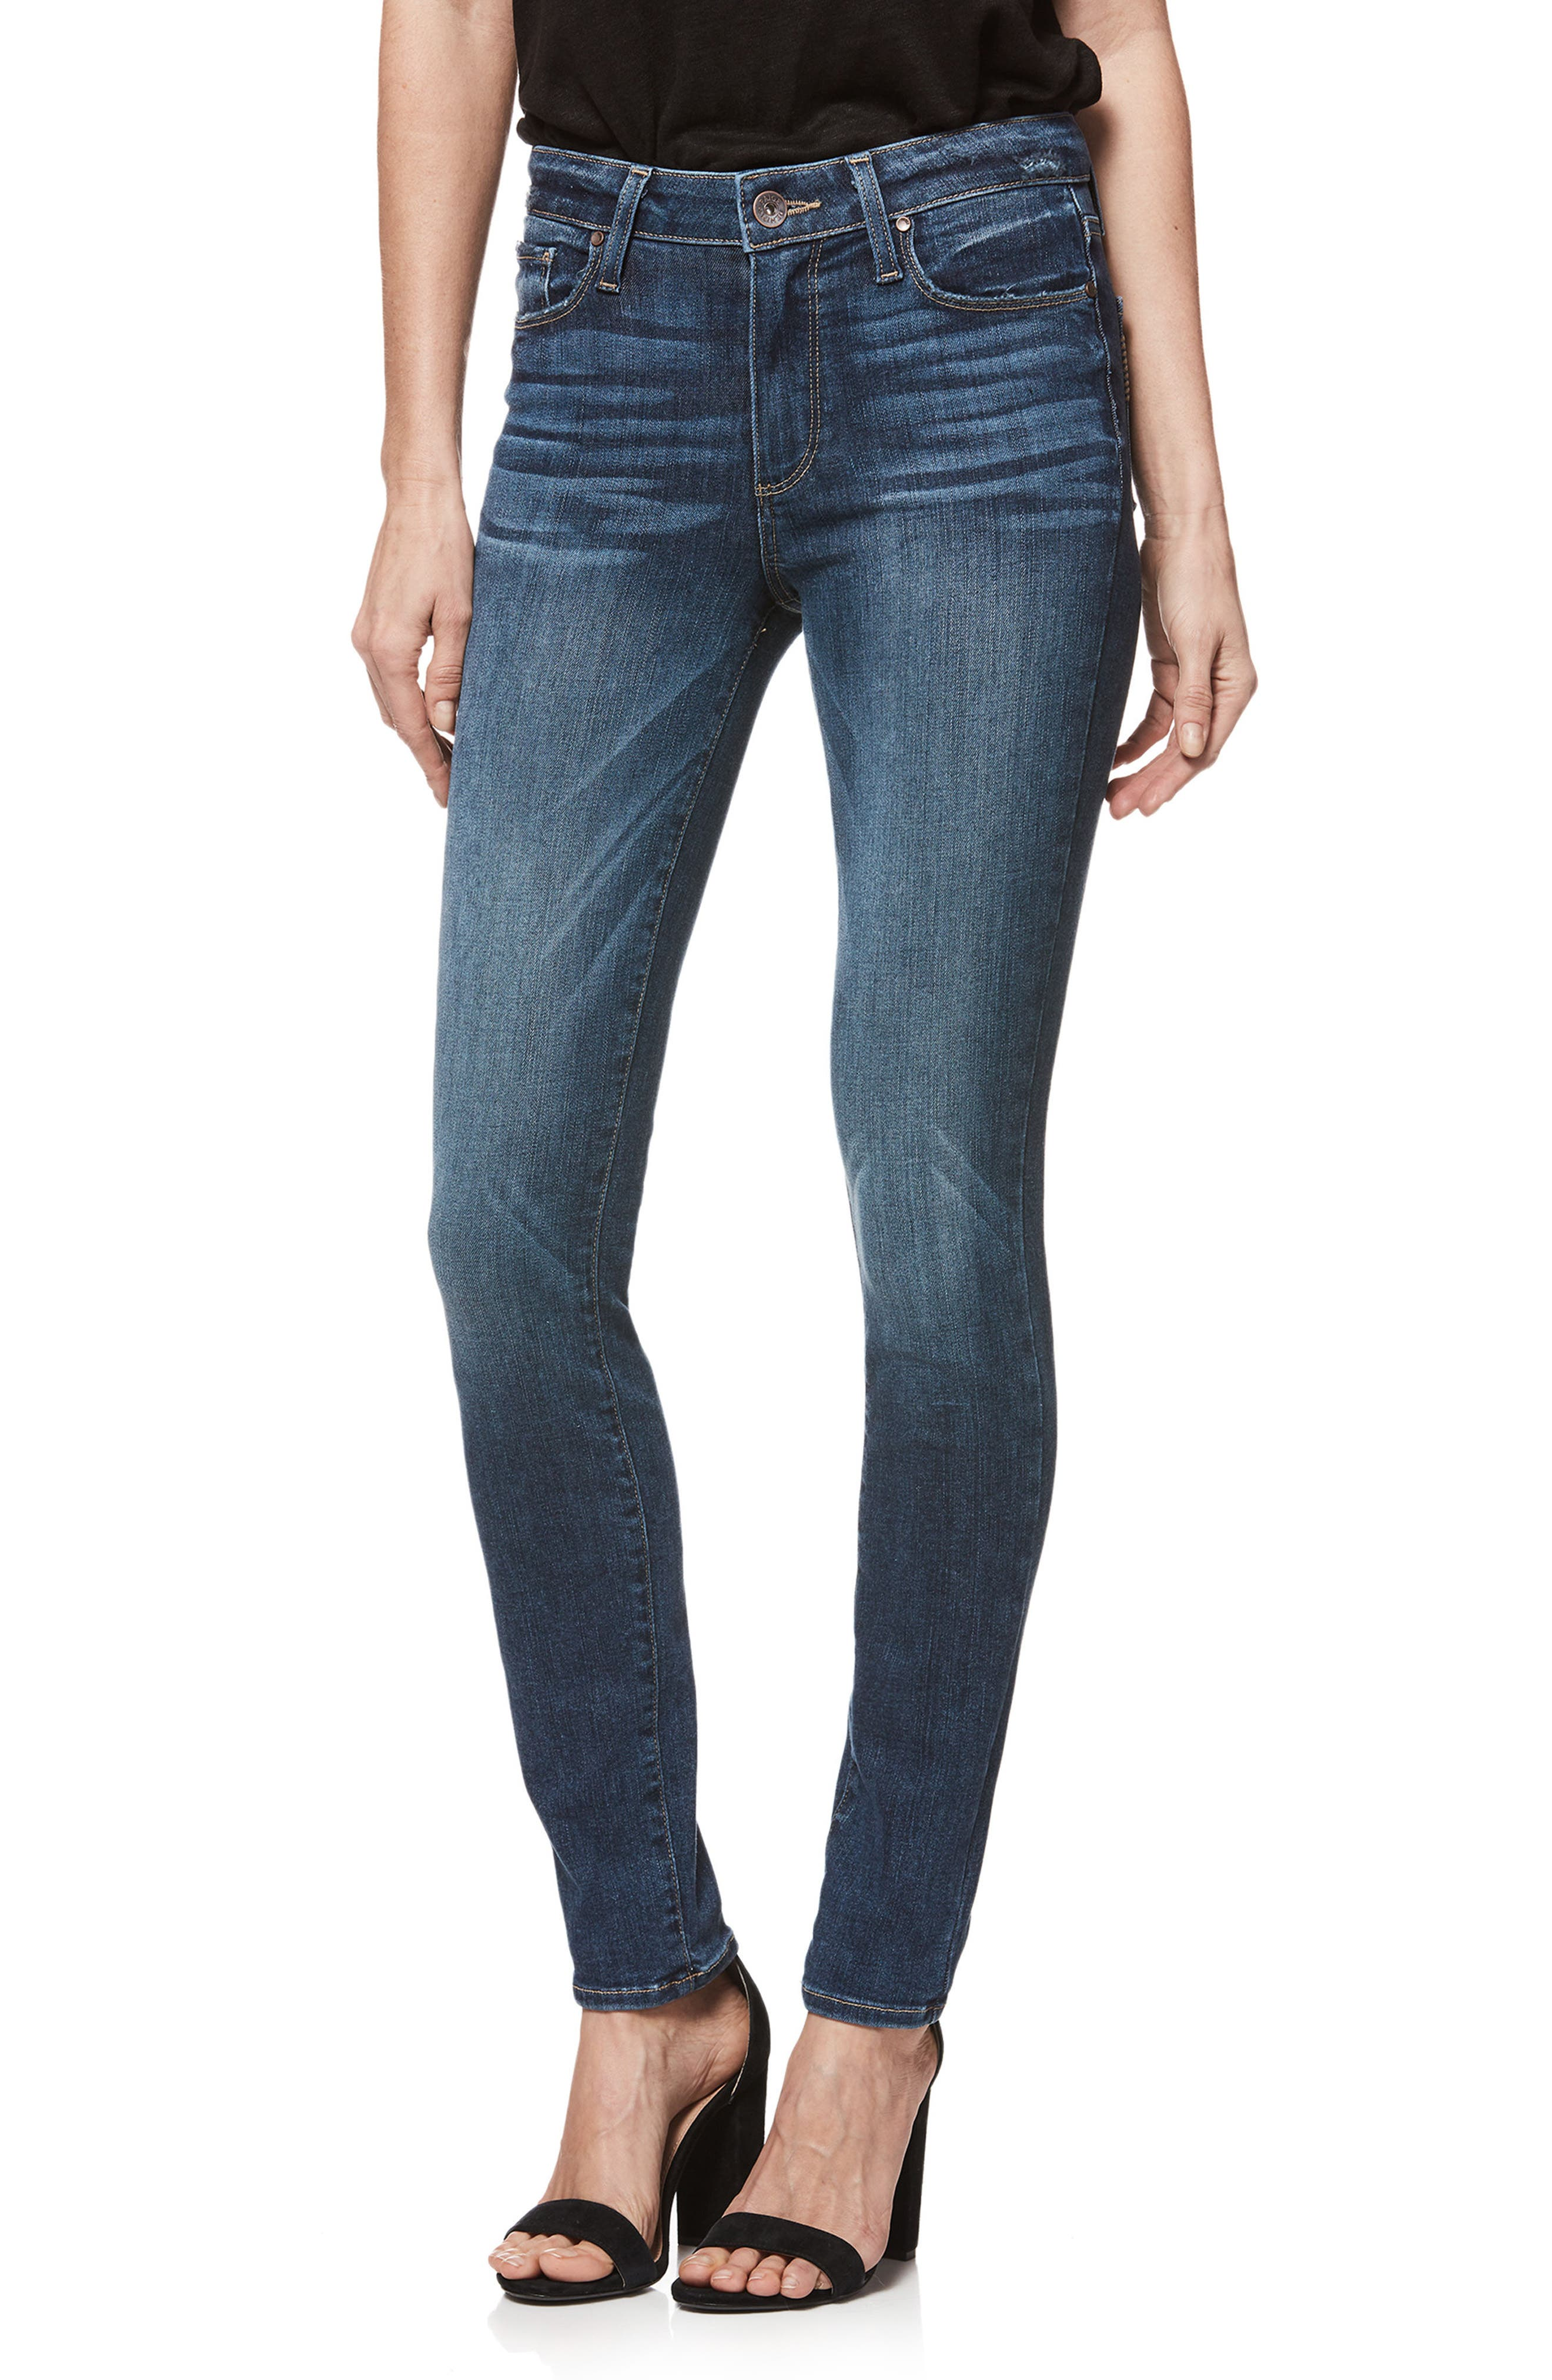 Transcend Vintage - Hoxton High Waist Ultra Skinny Jeans,                         Main,                         color, India